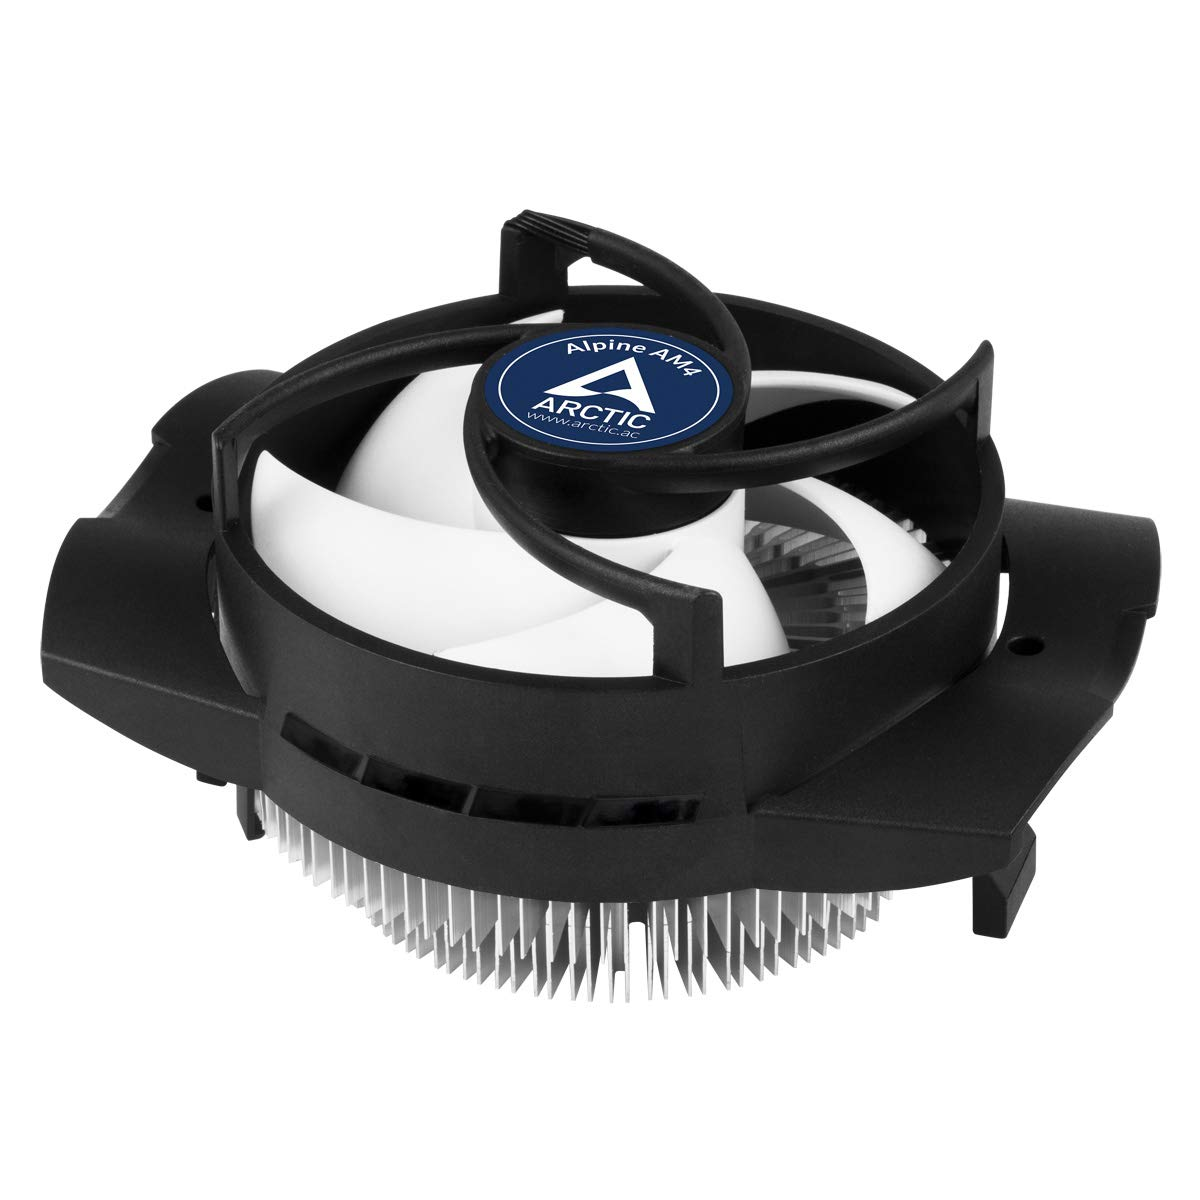 ARCTIC Alpine AM4 - Compact CPU Cooler for AMD Socket AM4/AM3/AM2, Silent Fan and Quiet Processor Cooler, PWM Technology, Easy Installation and Long Service Life, High Cooling Performance, Up to 95 W